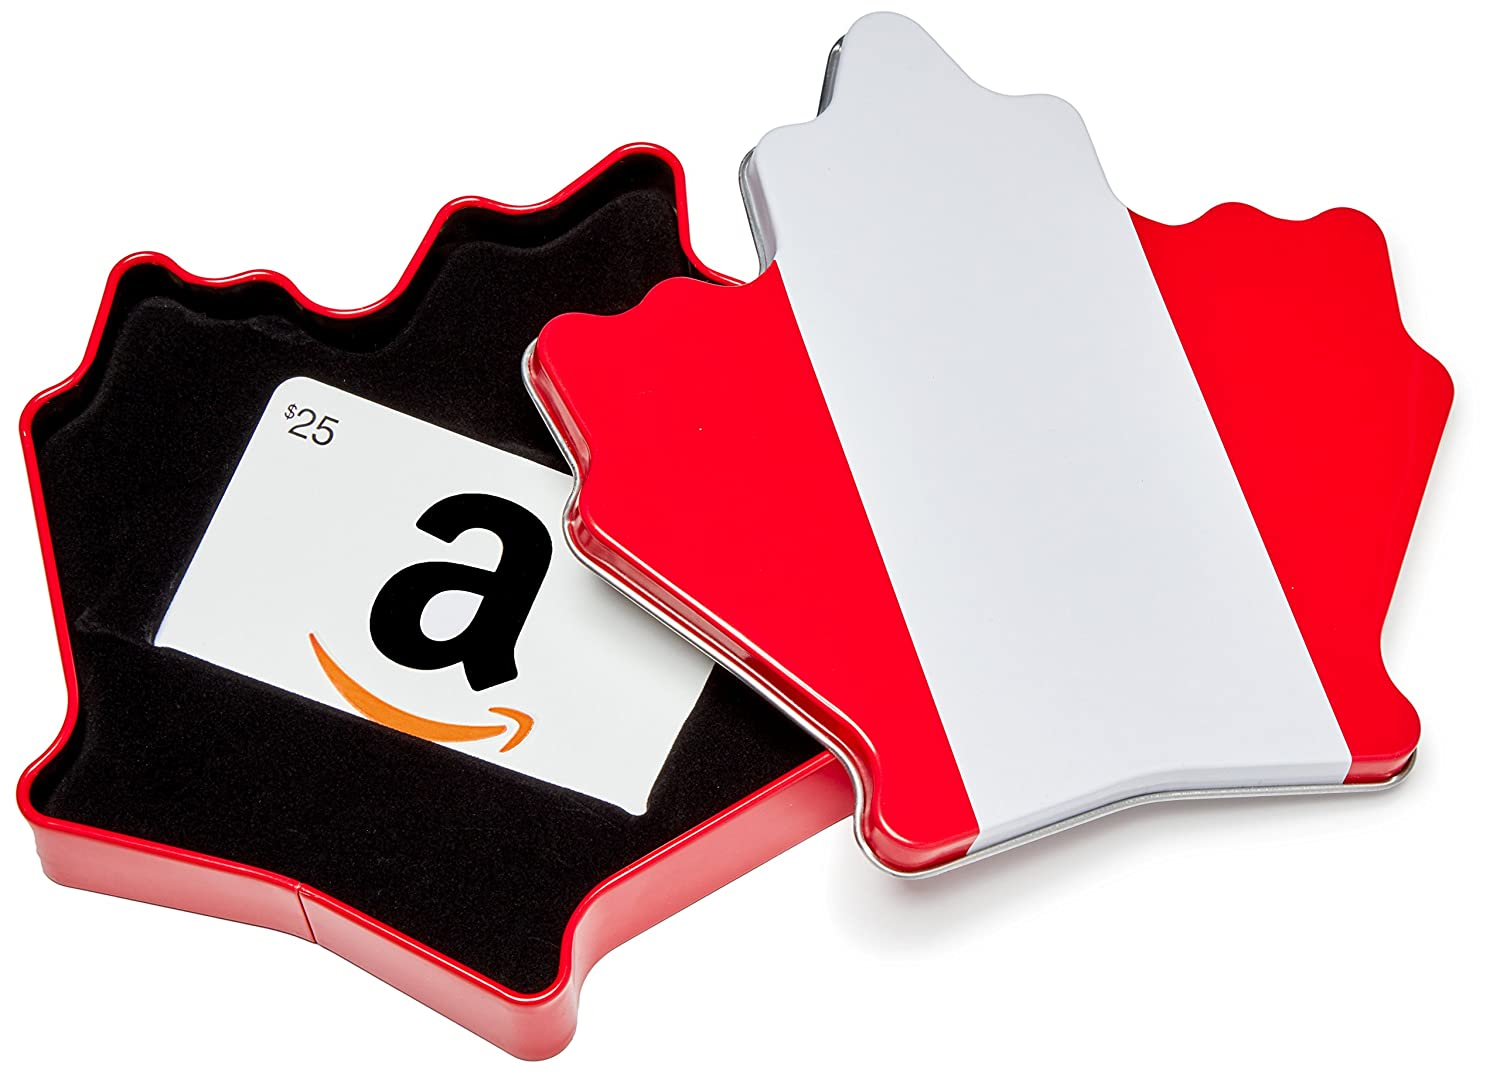 Amazon.ca Gift Card in a Maple Leaf Tin (Classic White Card Design) Amazon.com.ca Inc.